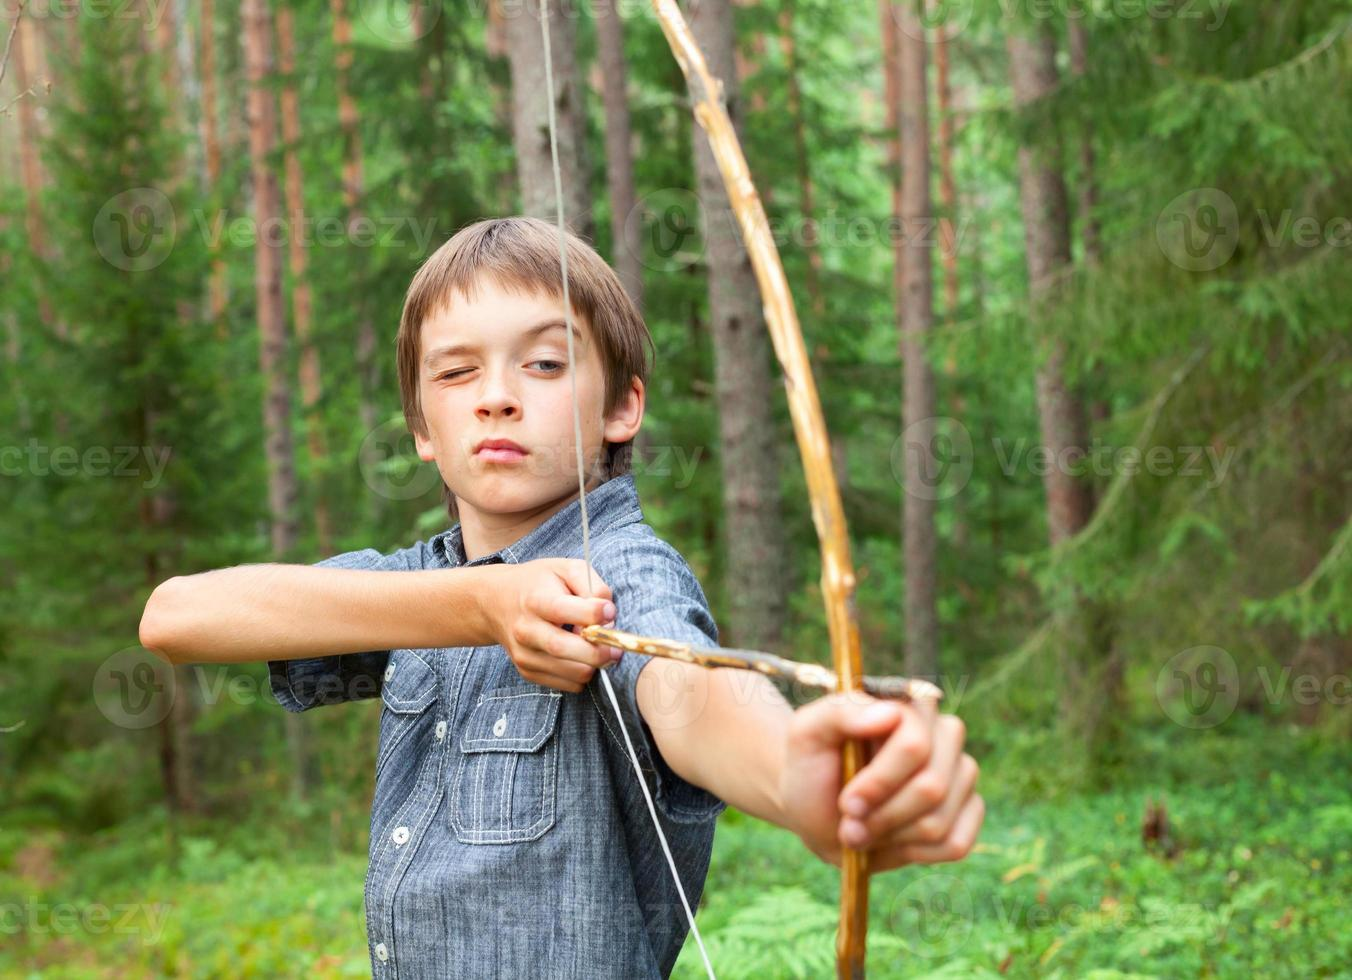 Kid with homemade bow and arrow photo